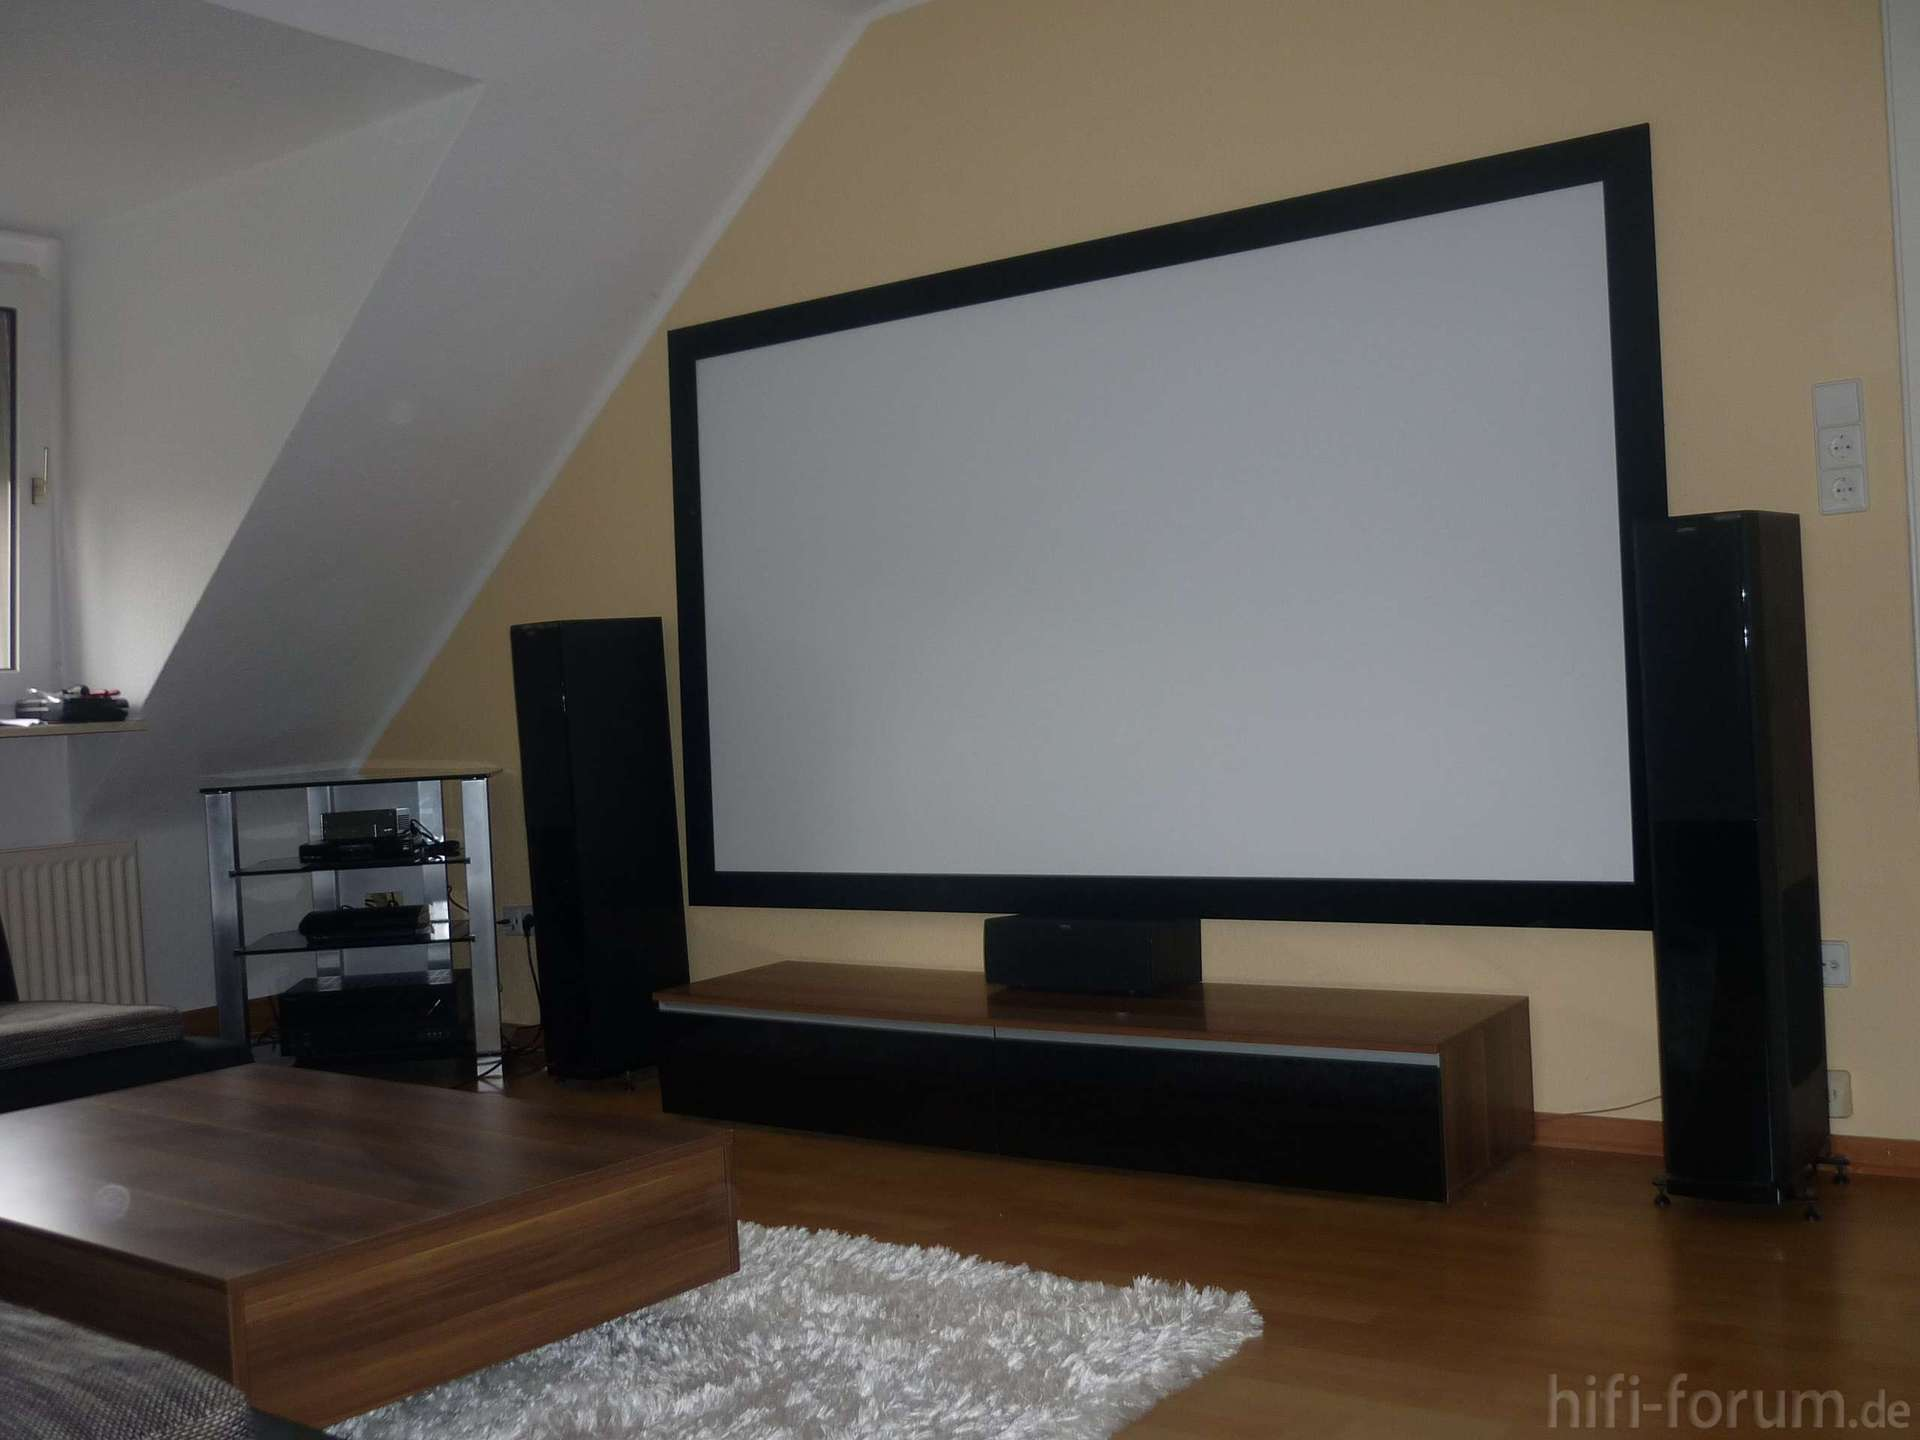 heimkino mit beamer und leinwand haus design m bel. Black Bedroom Furniture Sets. Home Design Ideas